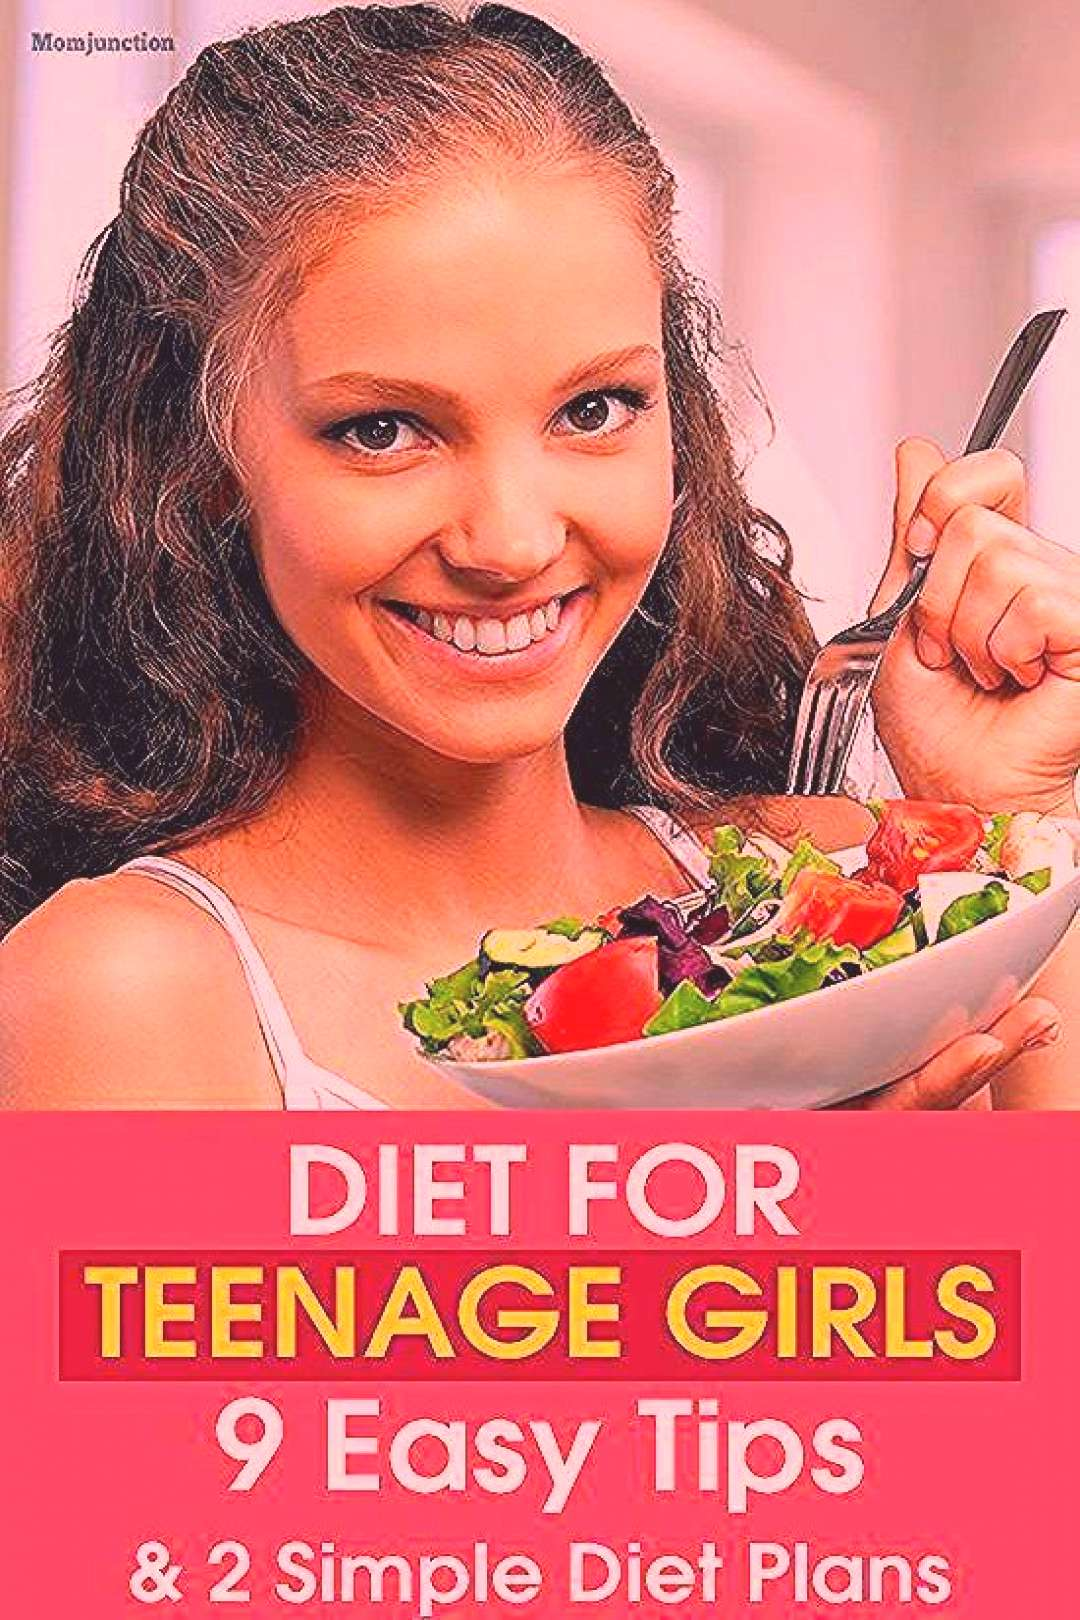 Diet For Teenage Girls 9 Easy Tips And 2 Simple Diet Plans Here, MomJunction ..., -  Diet For